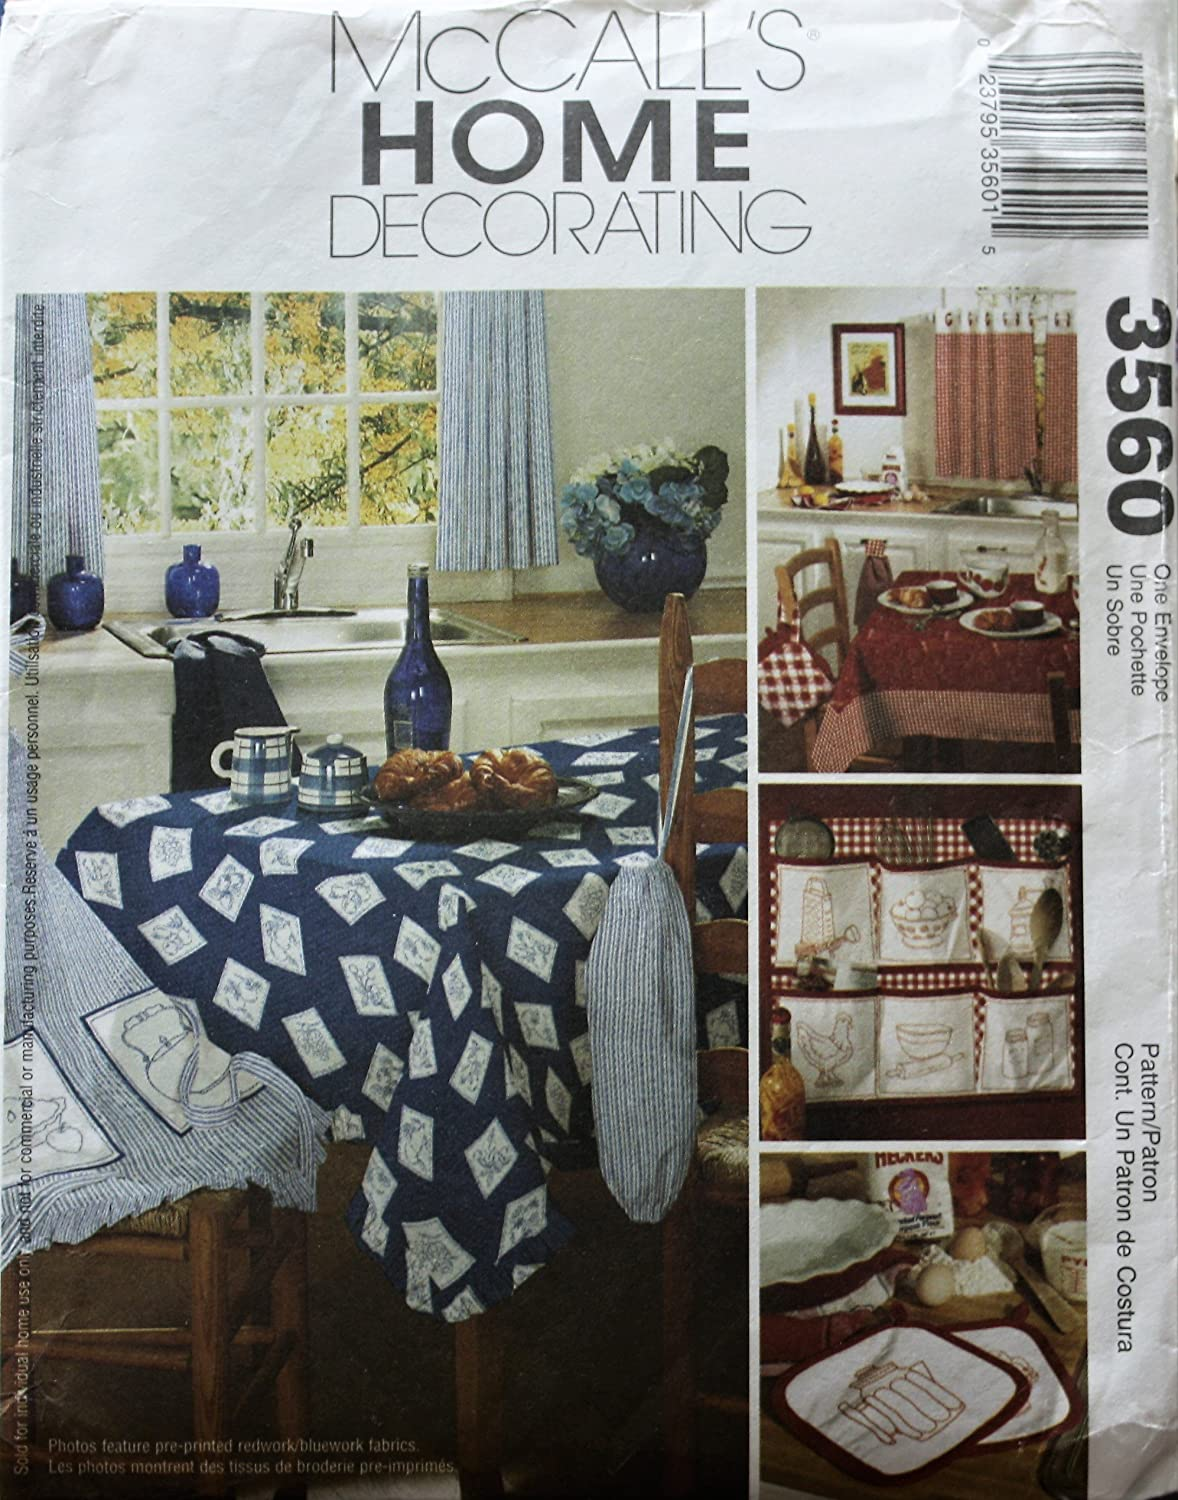 McCall's 3560 Home Decorating Sewing Pattern Curtains Towel Potholders Apron